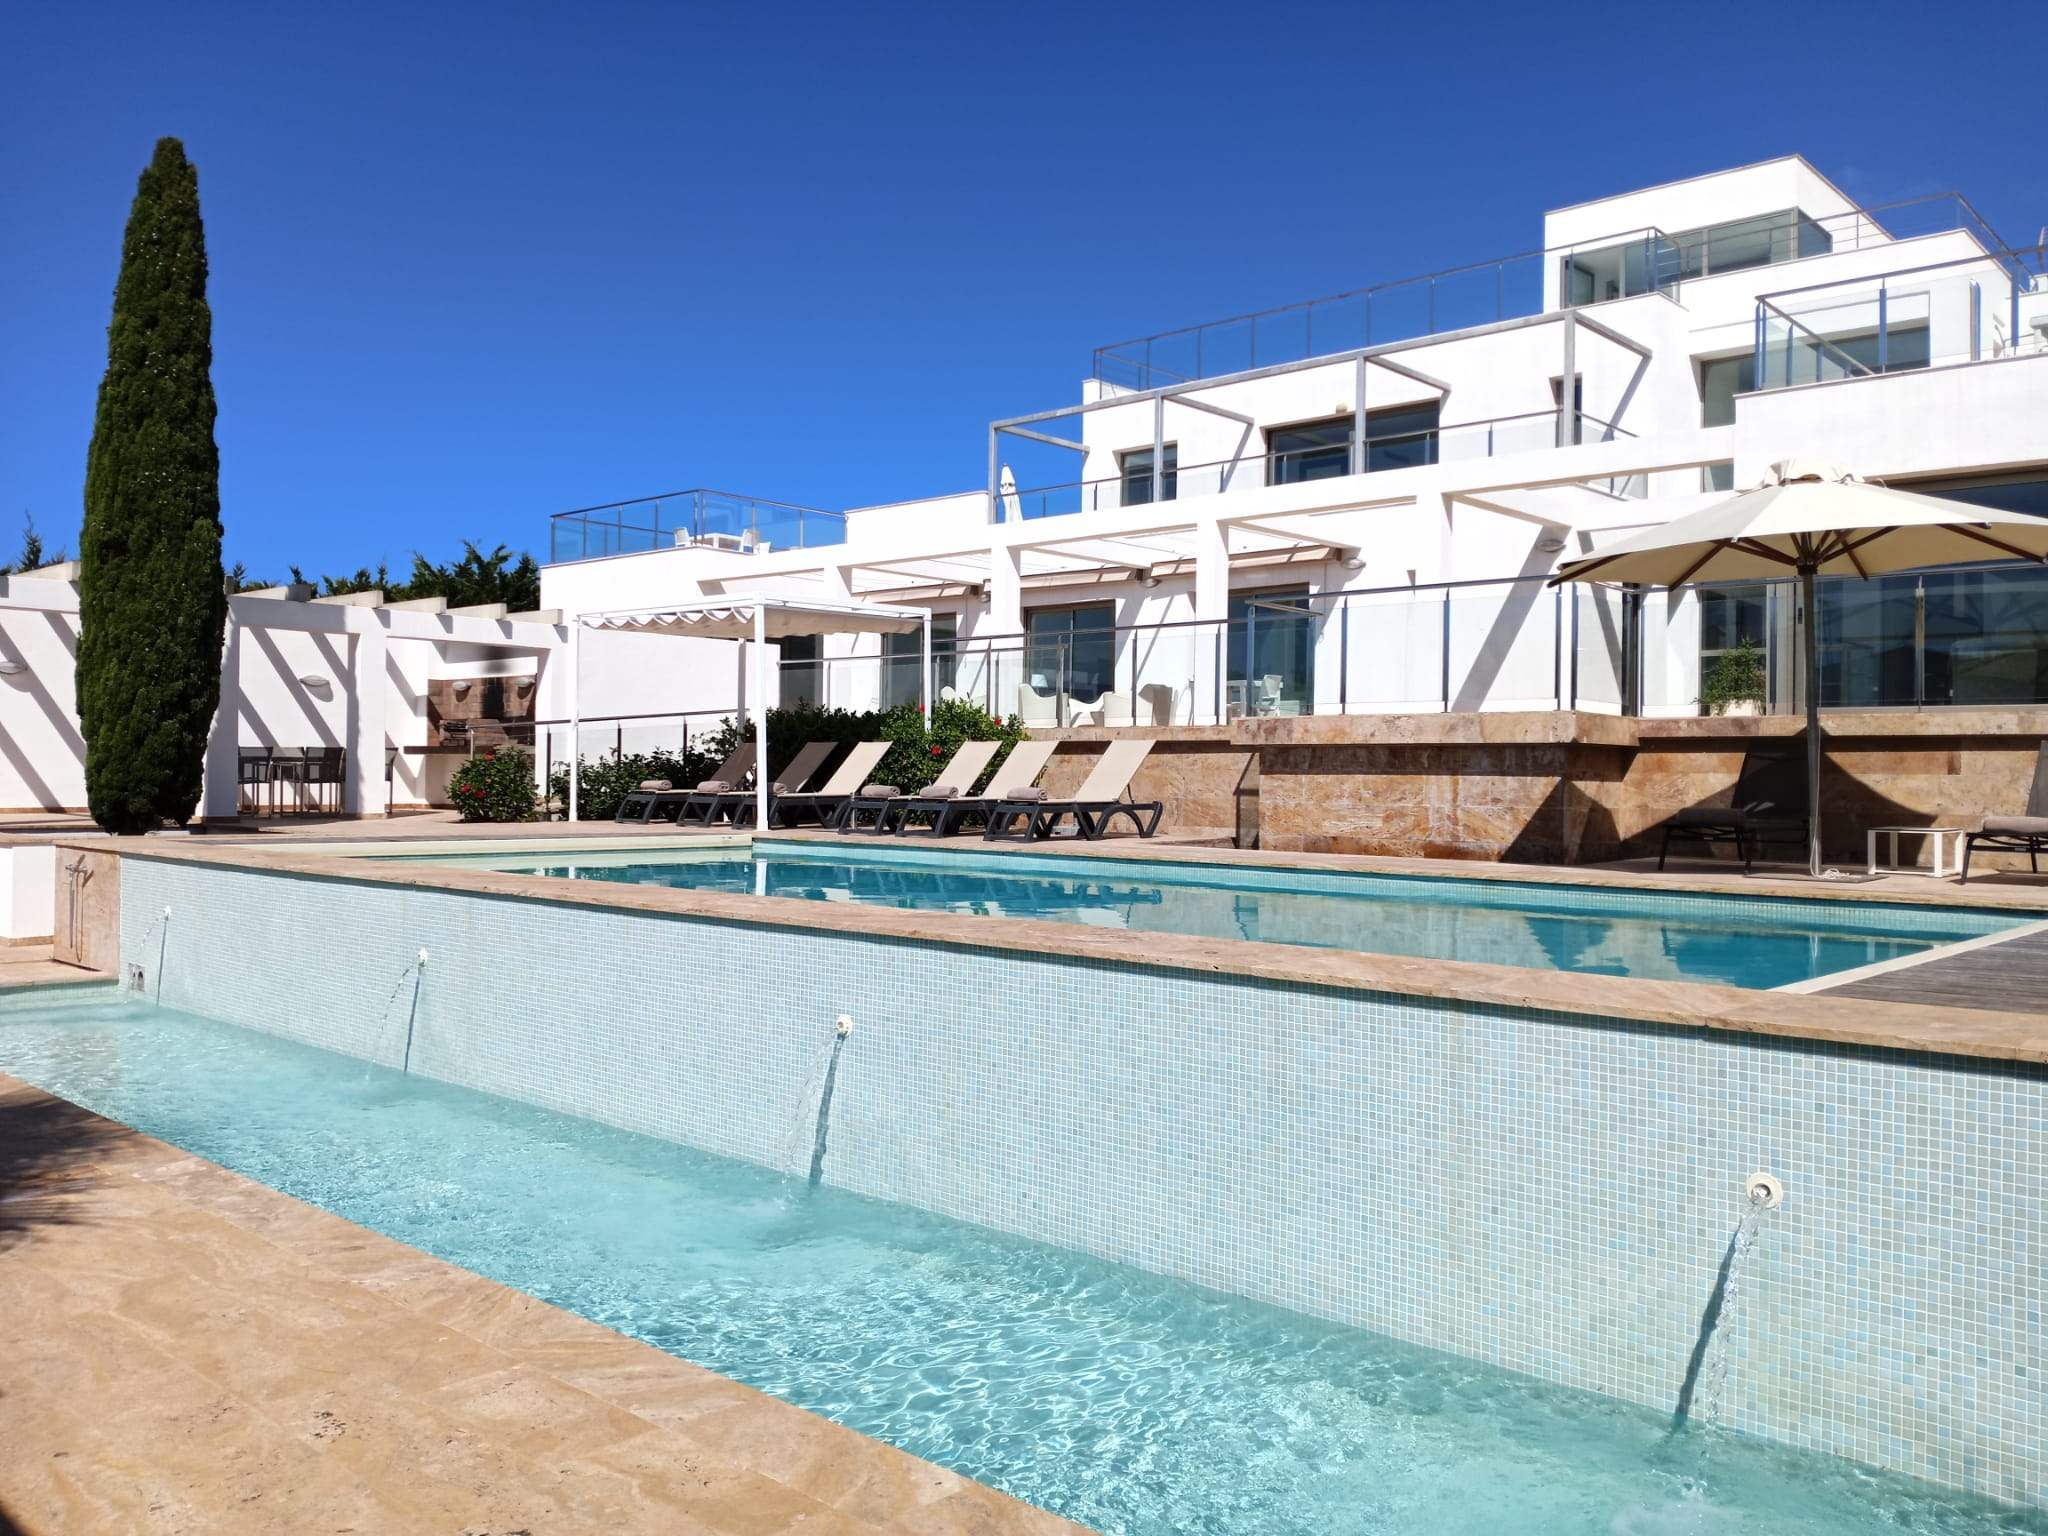 Casa Pitiusa, 5 Bedroom rate, 5 bedroom villa in Mahon, San Luis & South East, Menorca Photo #7